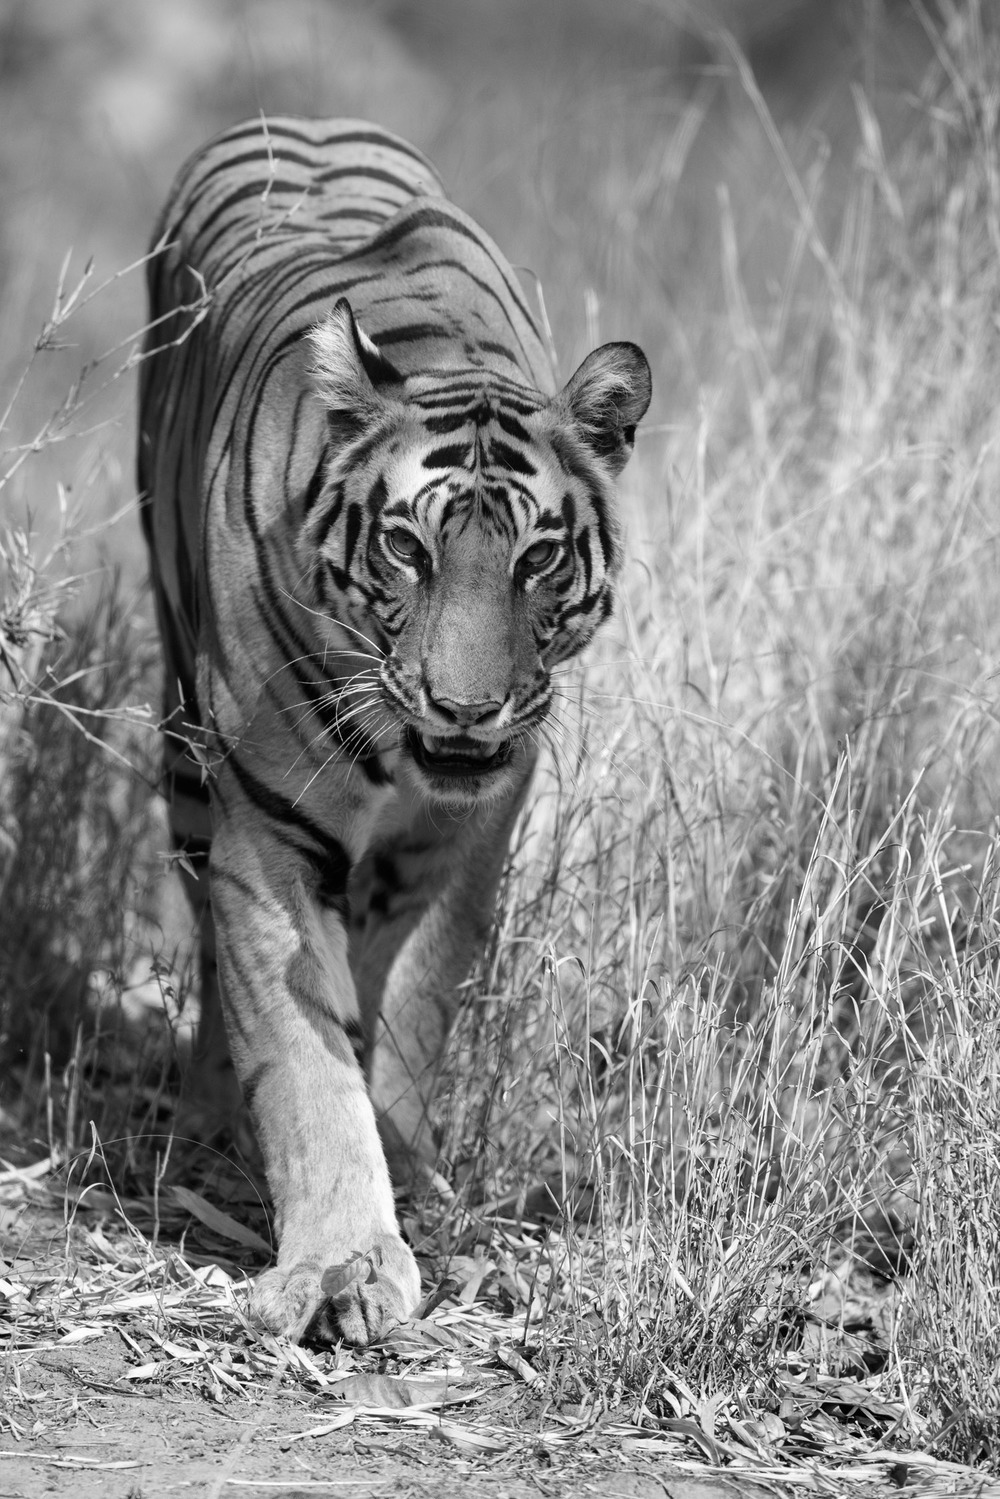 Bengal tigress approaching, Bandhavgarh National Park, Madhya Pradesh, India